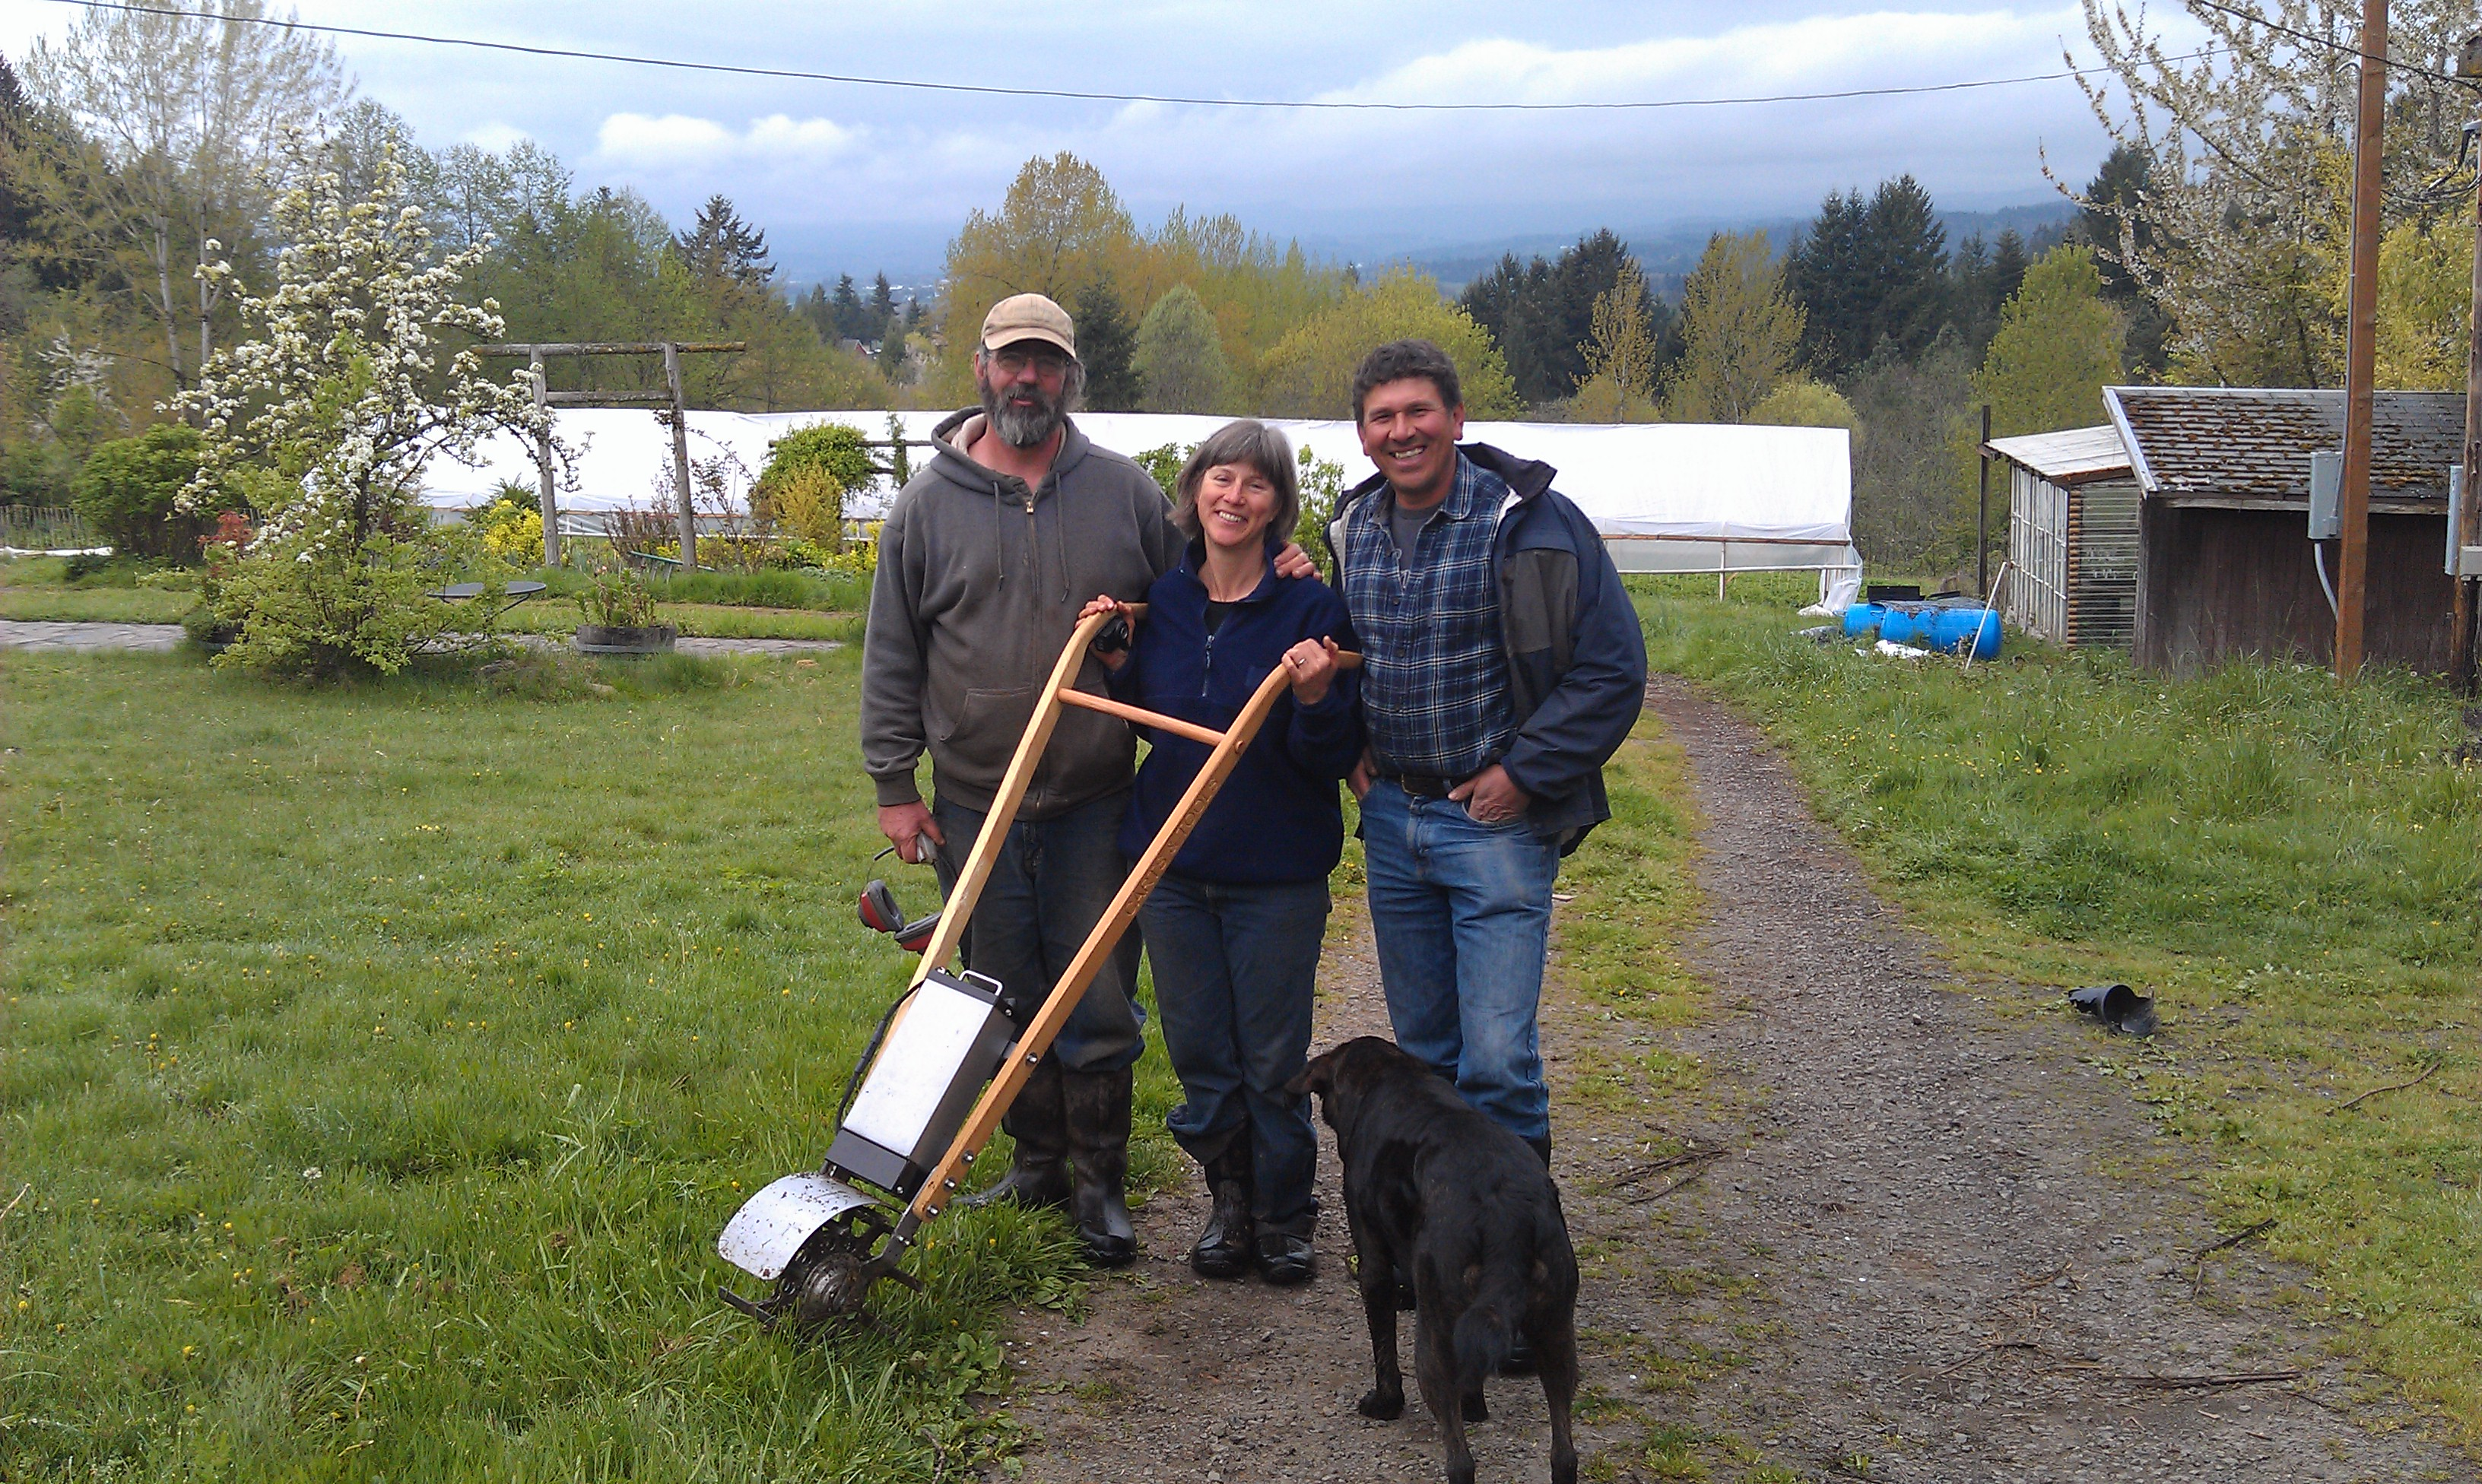 Carts and Tools Visits Pumpkin  Ridge Farm with Tillie